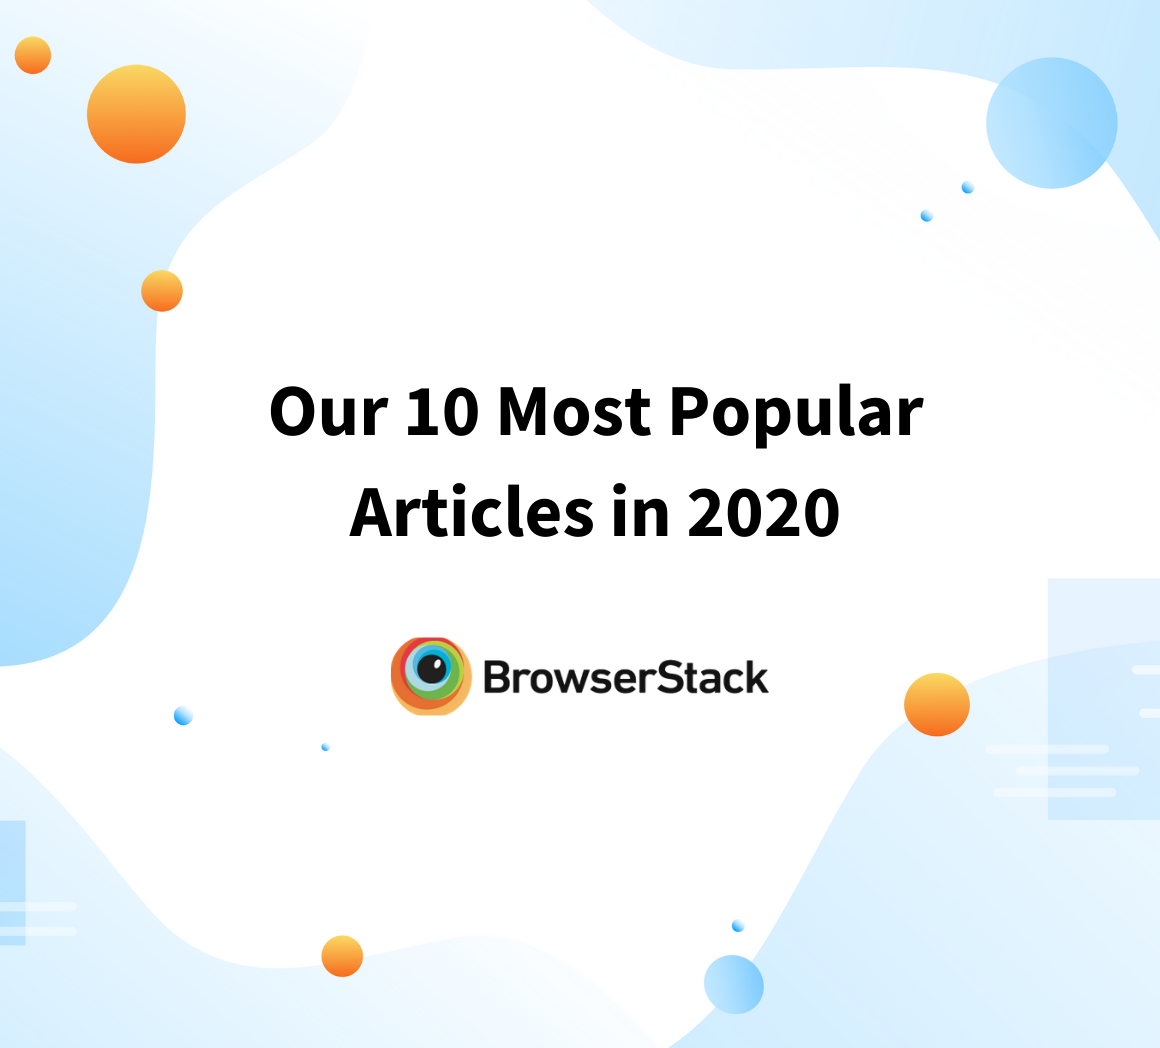 10 most popular articles by BrowserStack